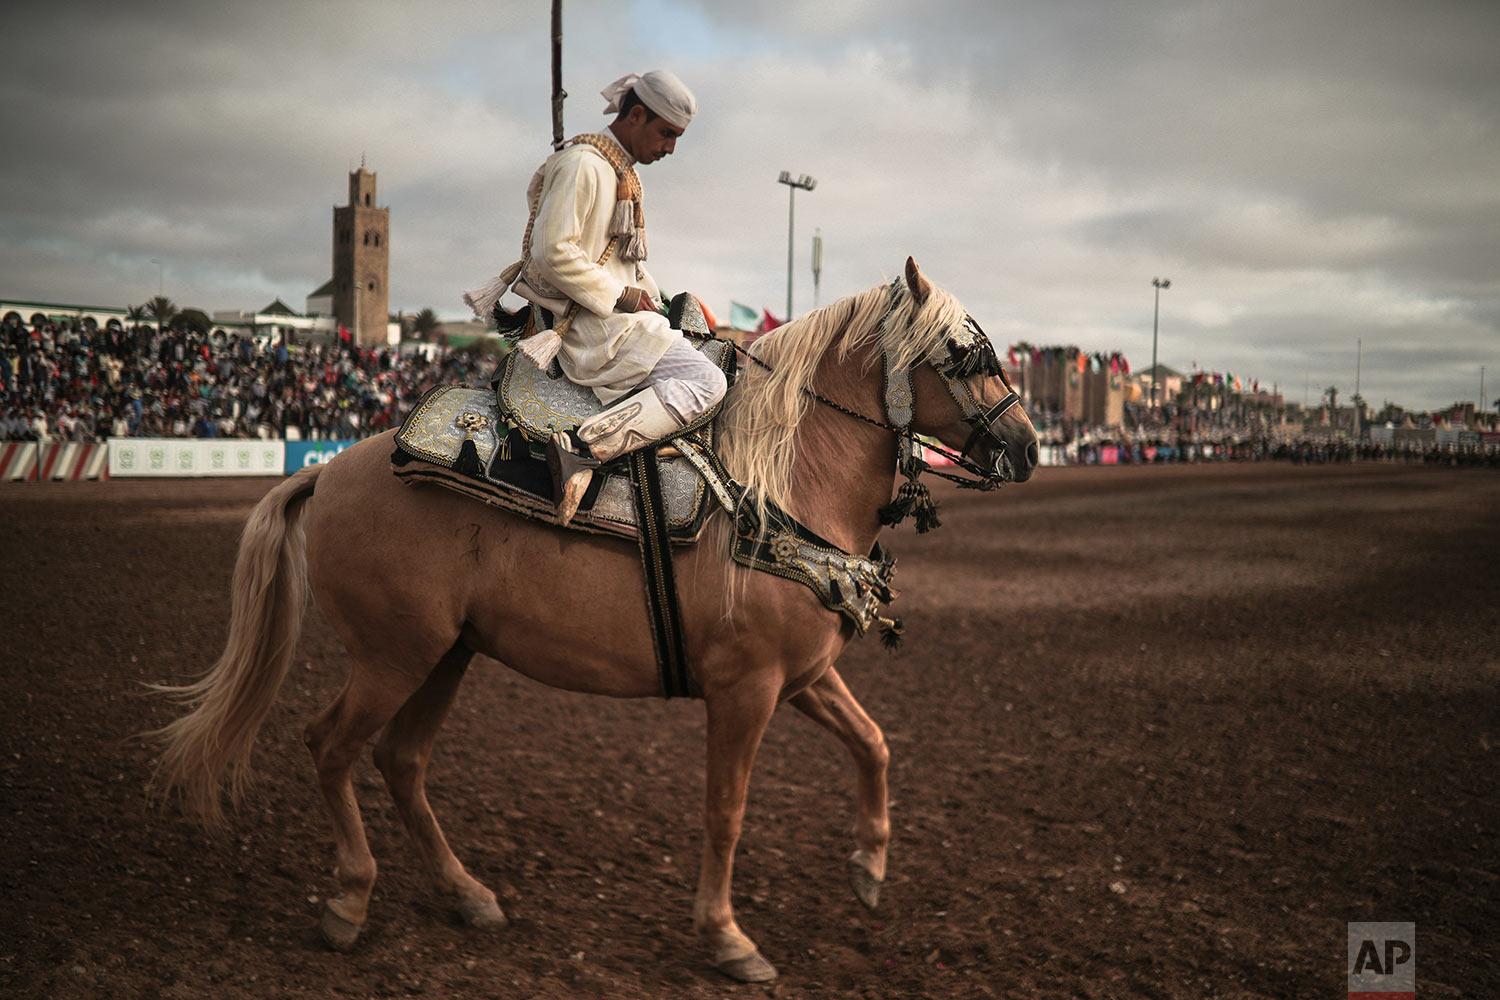 A horse rider prepares to exit after his troupe took part in Tabourida, a traditional horse riding show also known as Fantasia, in the coastal town of El Jadida, Morocco, July 25, 2019. (AP Photo/Mosa'ab Elshamy)